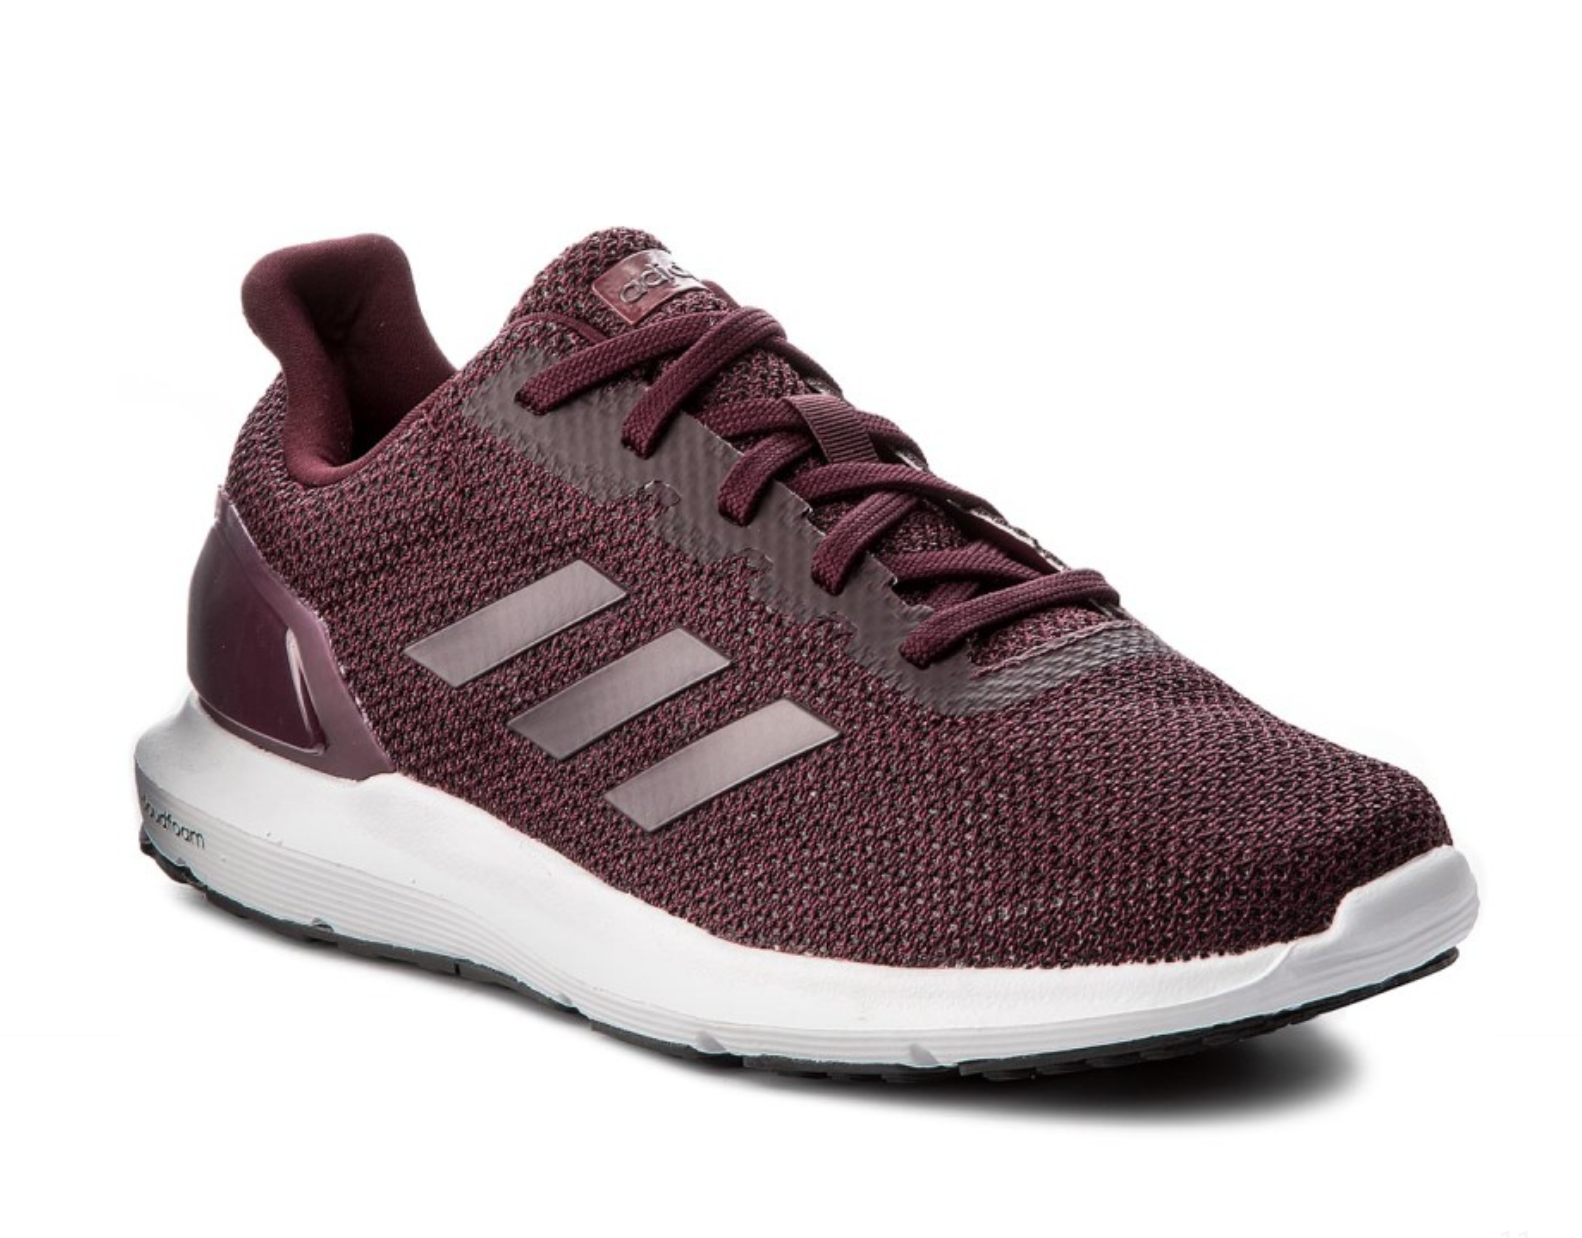 Adidas Cosmic 2 SL femmes UK 6 UE 39 1 3 Ruby rouge Running chaussures Trainers db1764